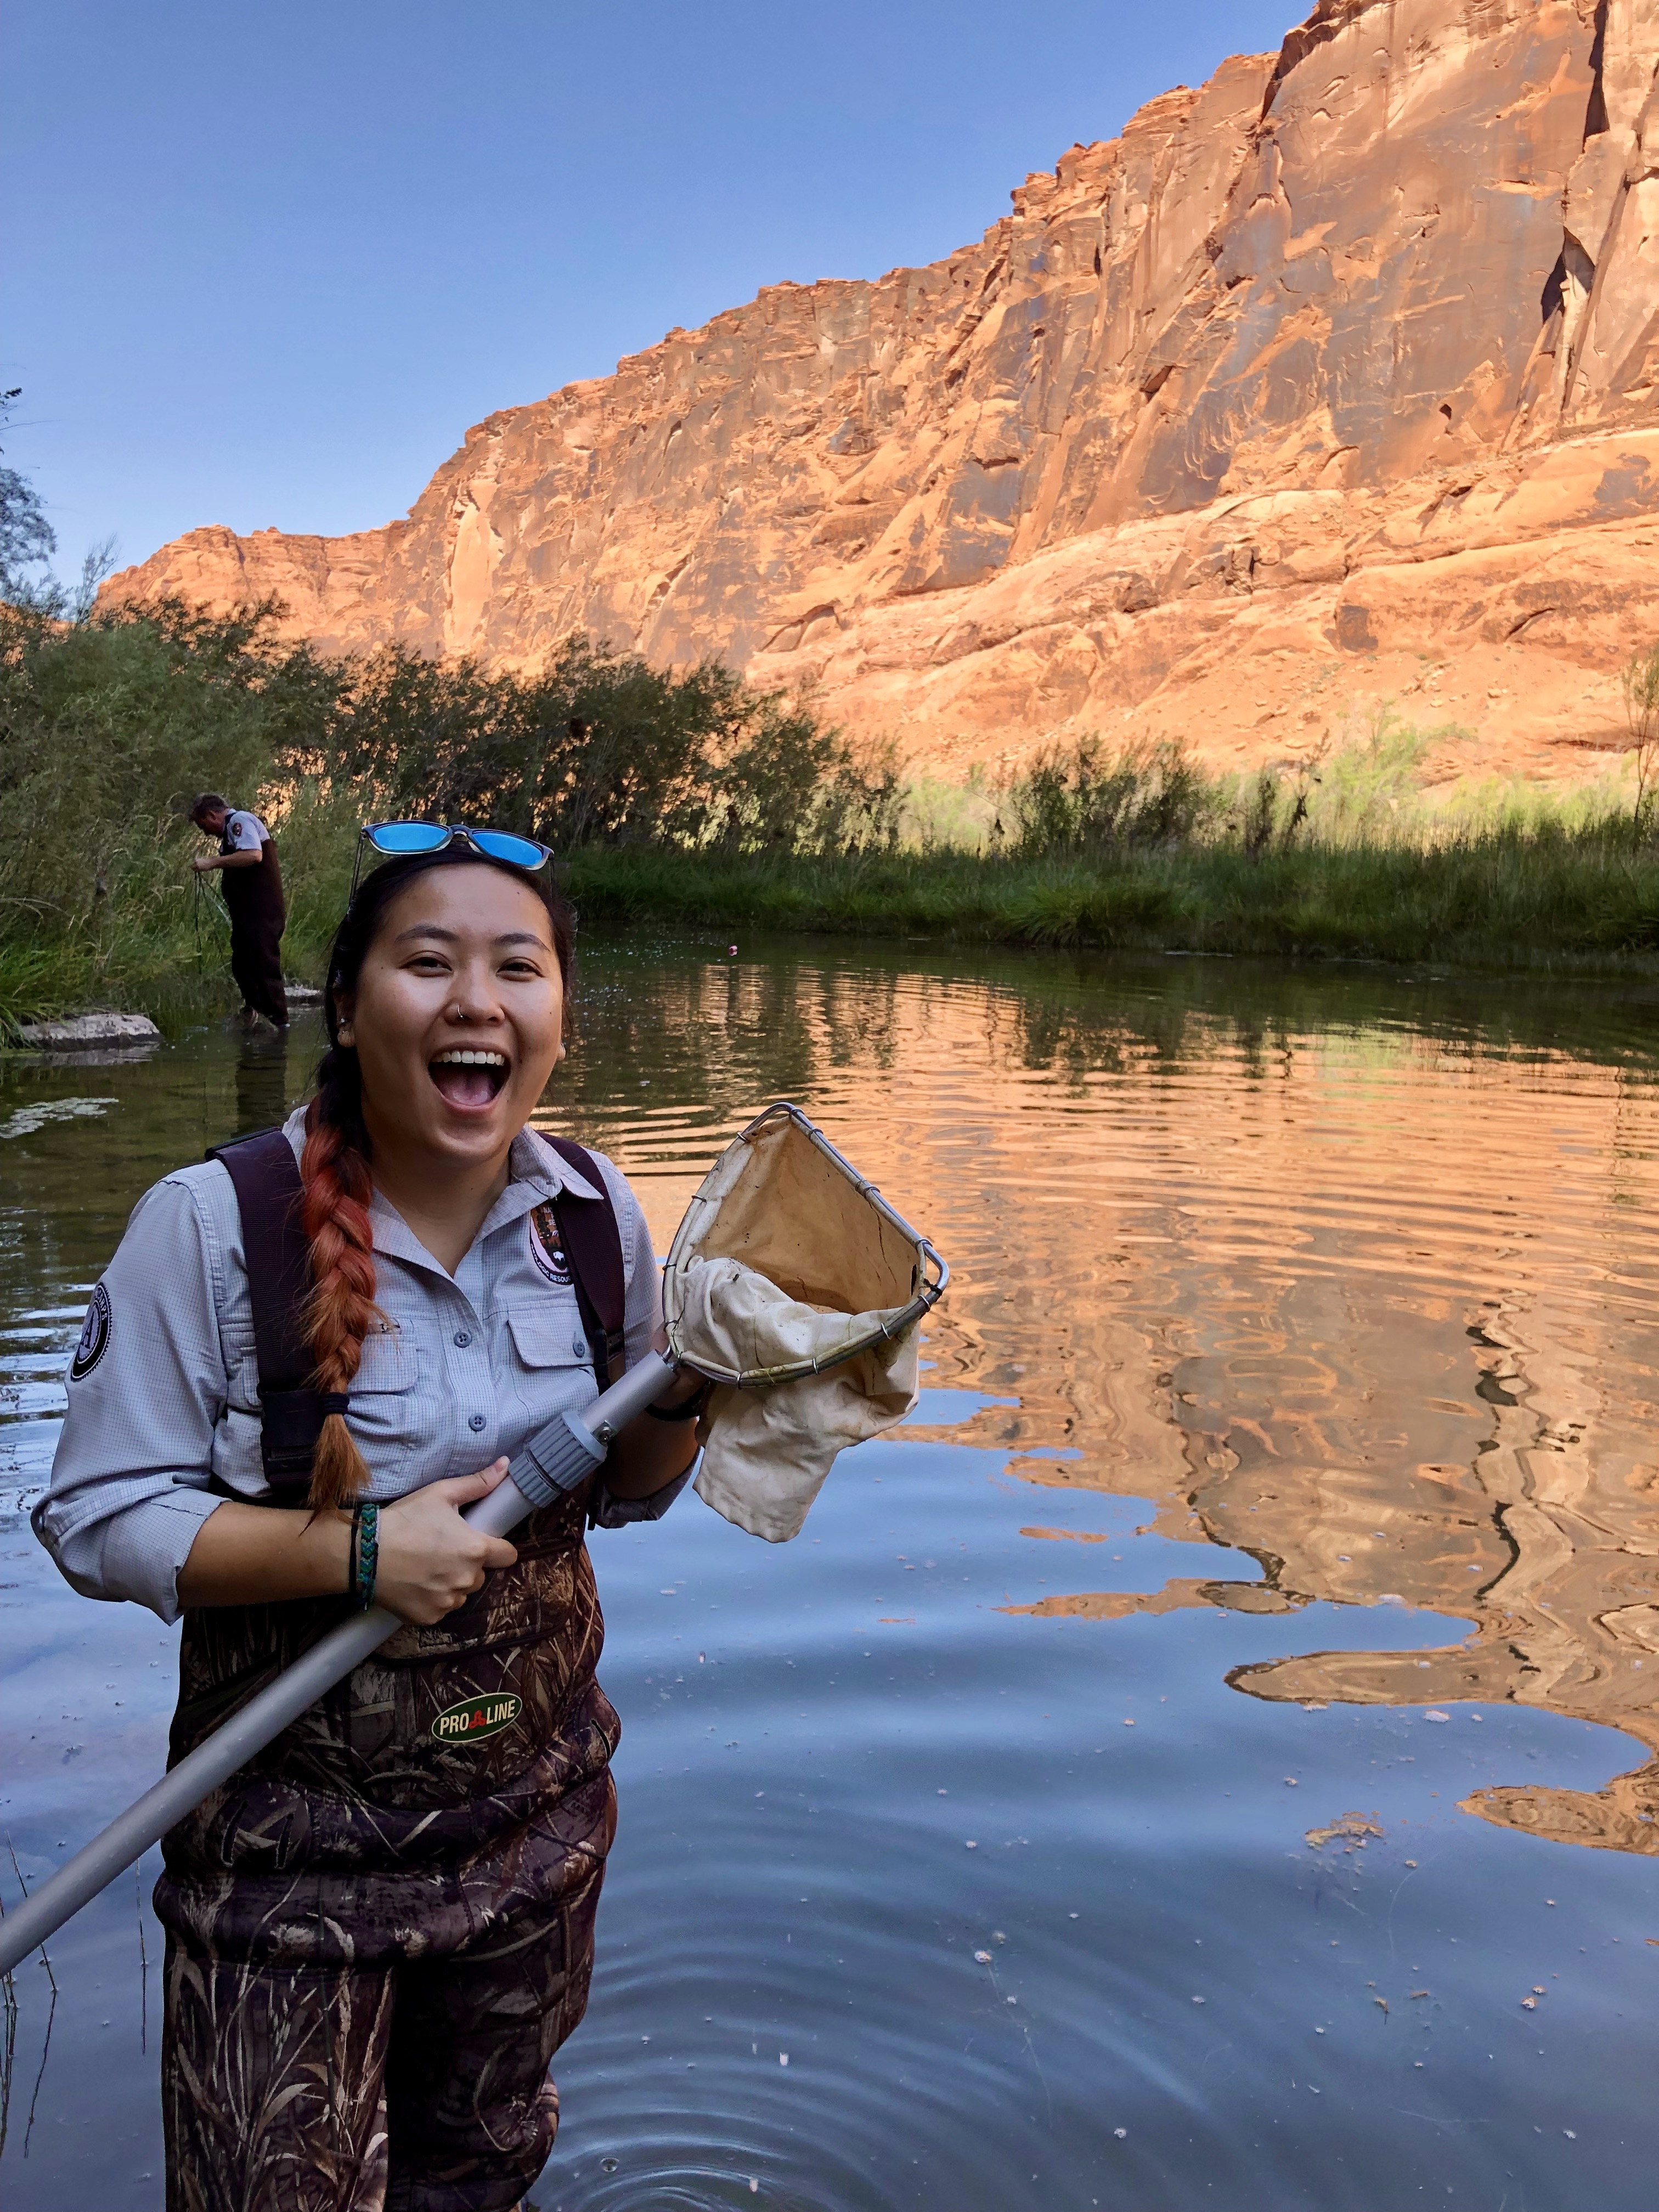 A scienctist stands in knee deep water in a red rock canyon holding a net and a big smile on her face with a